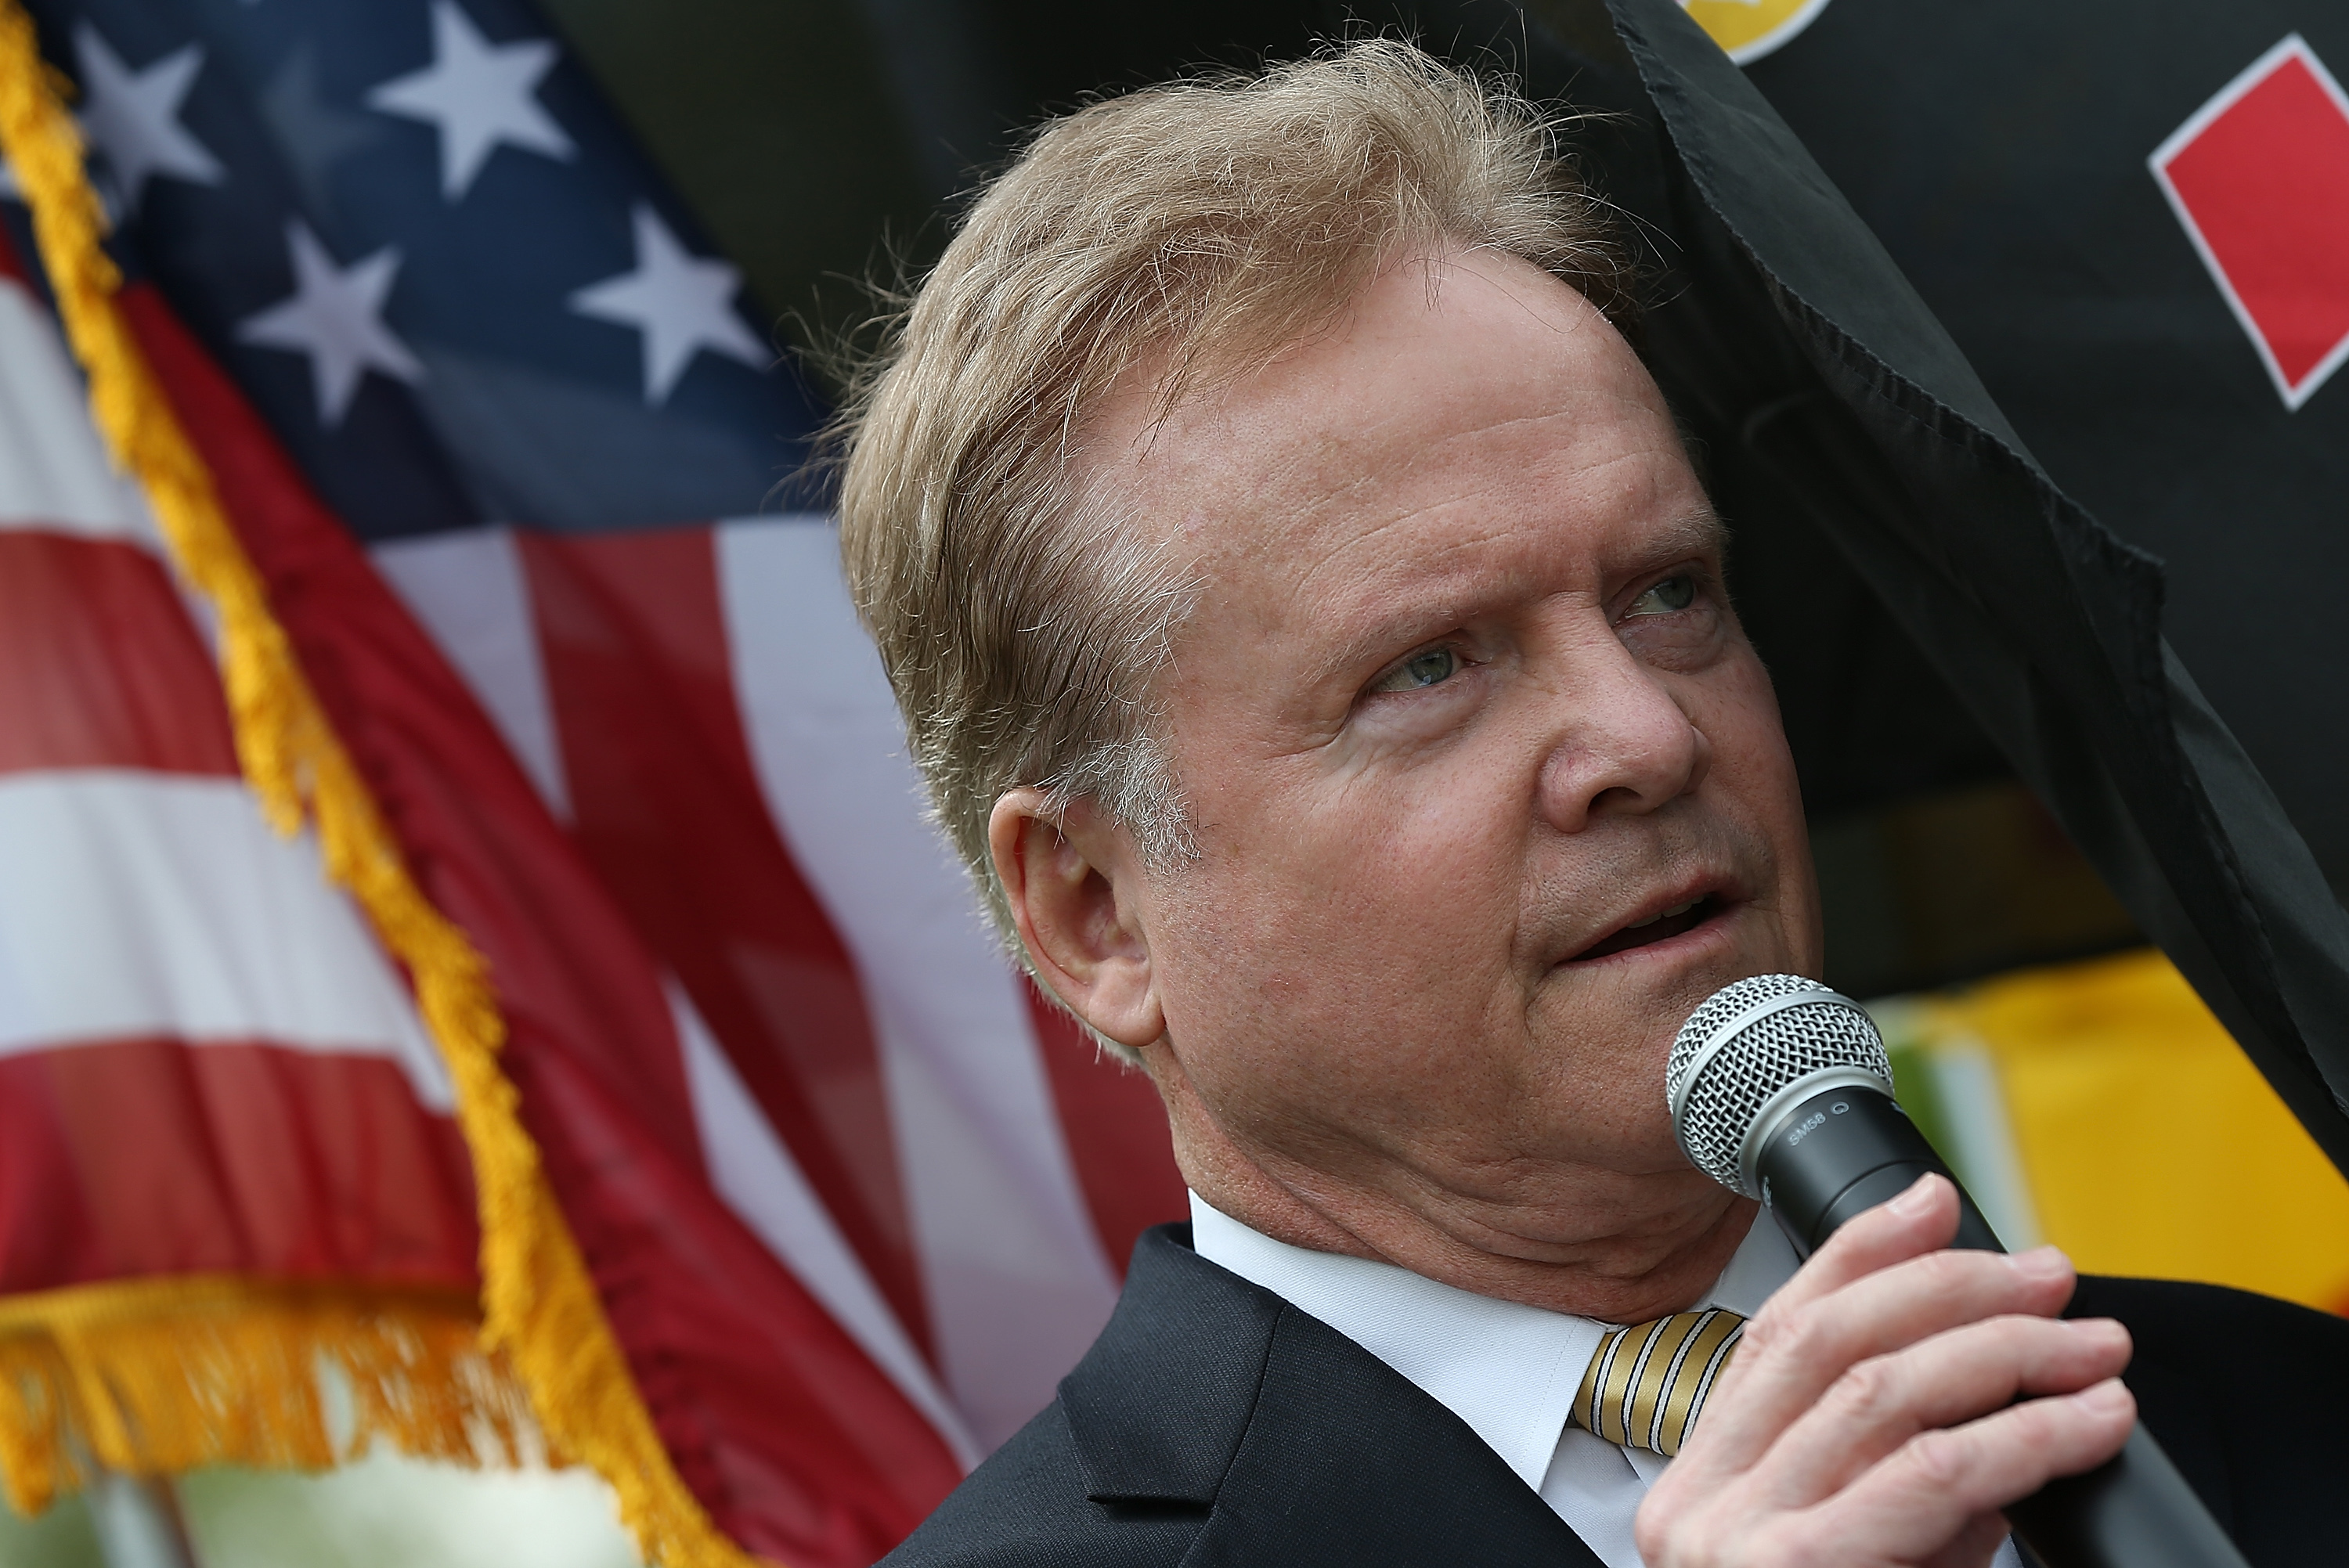 WASHINGTON, DC - APRIL 30: Former U.S. Sen. and Vietnam war veteran Jim Webb (D-VA) speaks during a ceremony commemorating the 40th anniversary of the fall of Saigon near the Vietnam Veterans Memorial April 30, 2015 in Washington, DC. April 30 marks the day that the U.S. backed South Vietnamese government fell to North Vietnamese forces. (Photo by Win McNamee/Getty Images)